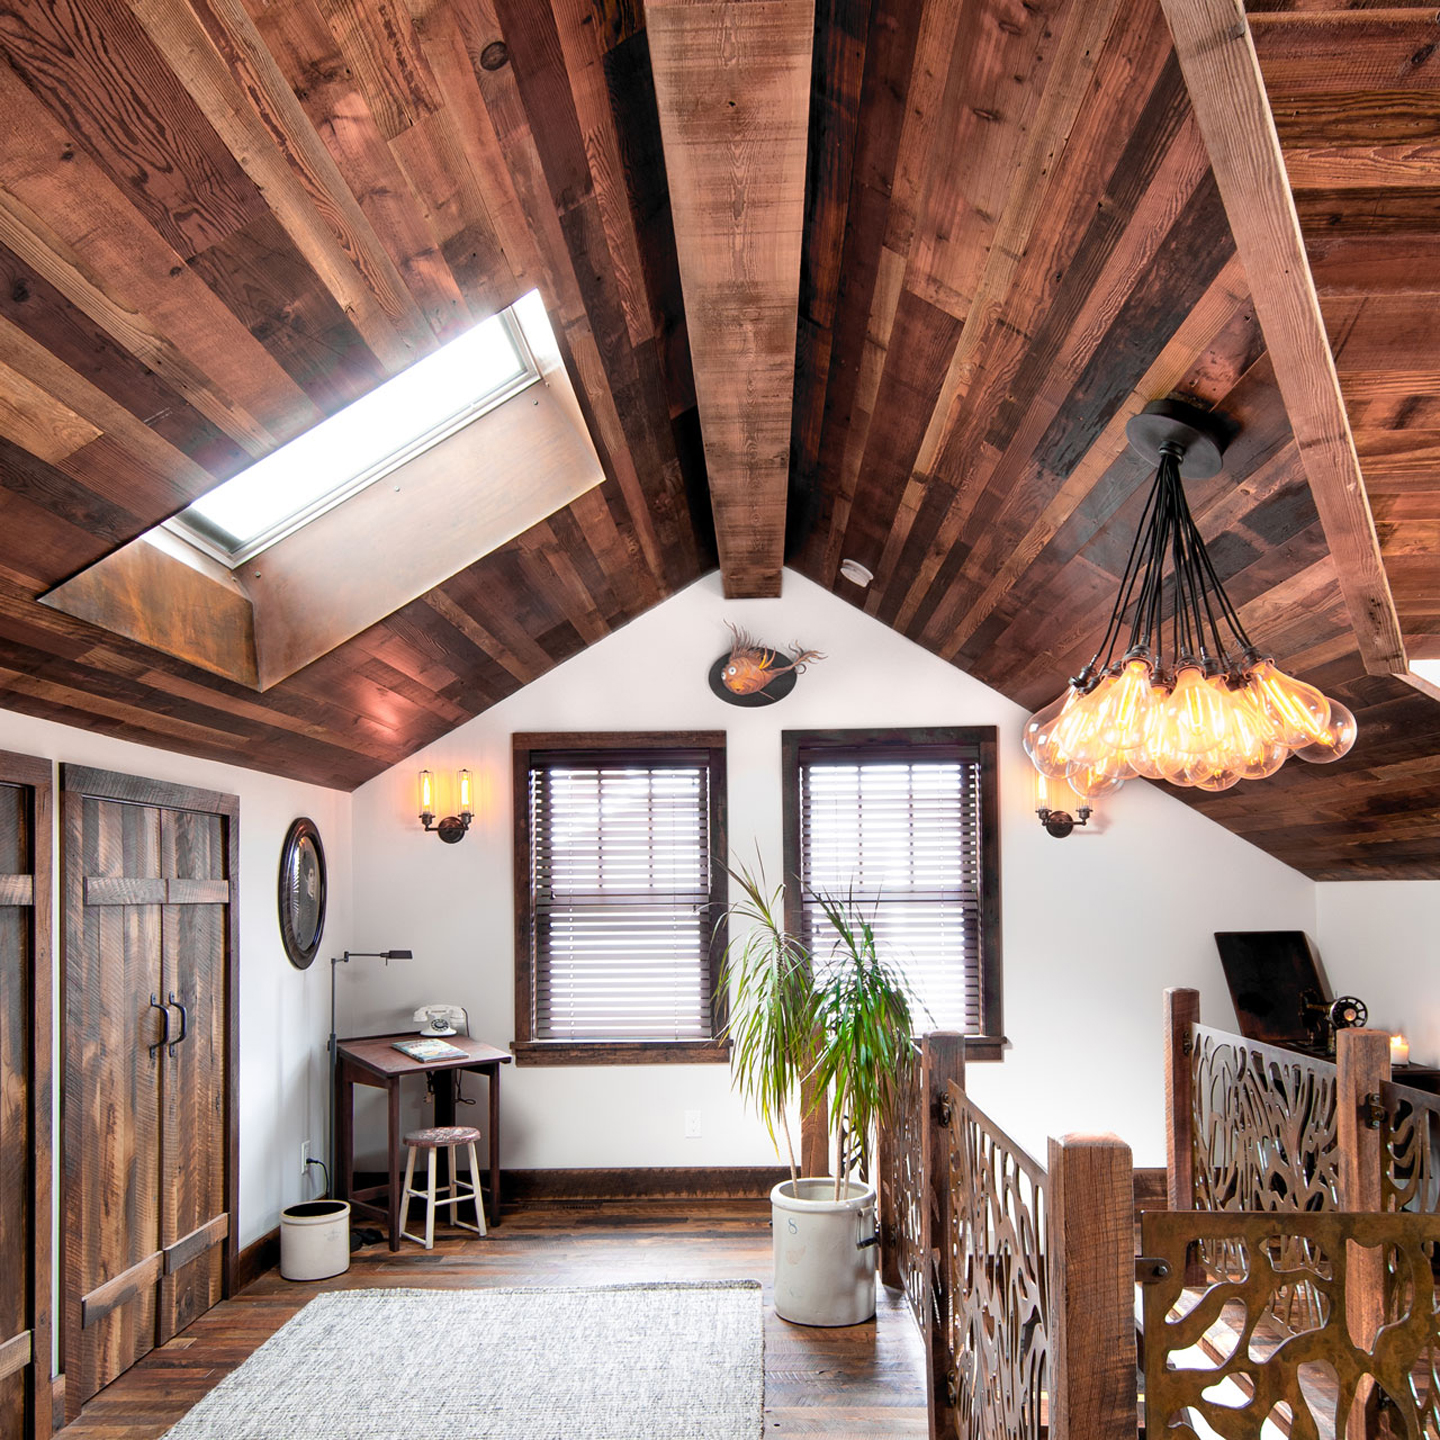 Types Of Wood Paneling Creating Great Design For Walls And Ceilings Elmwood Reclaimed Timber